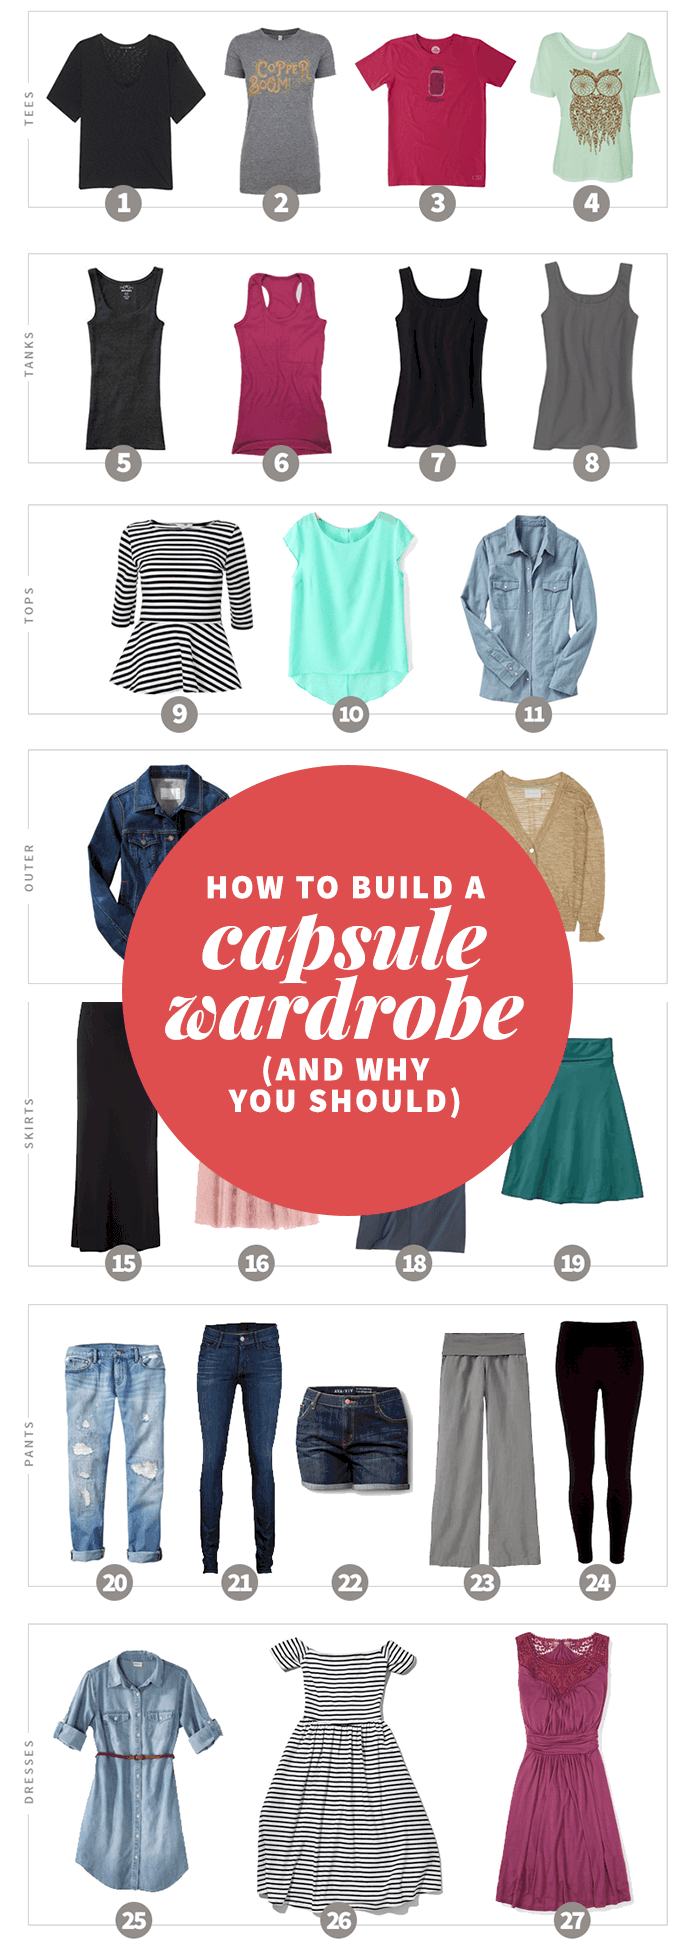 save off 90bdd 9a869 ... How to Build a Capsule Wardrobe (And Why You Should)